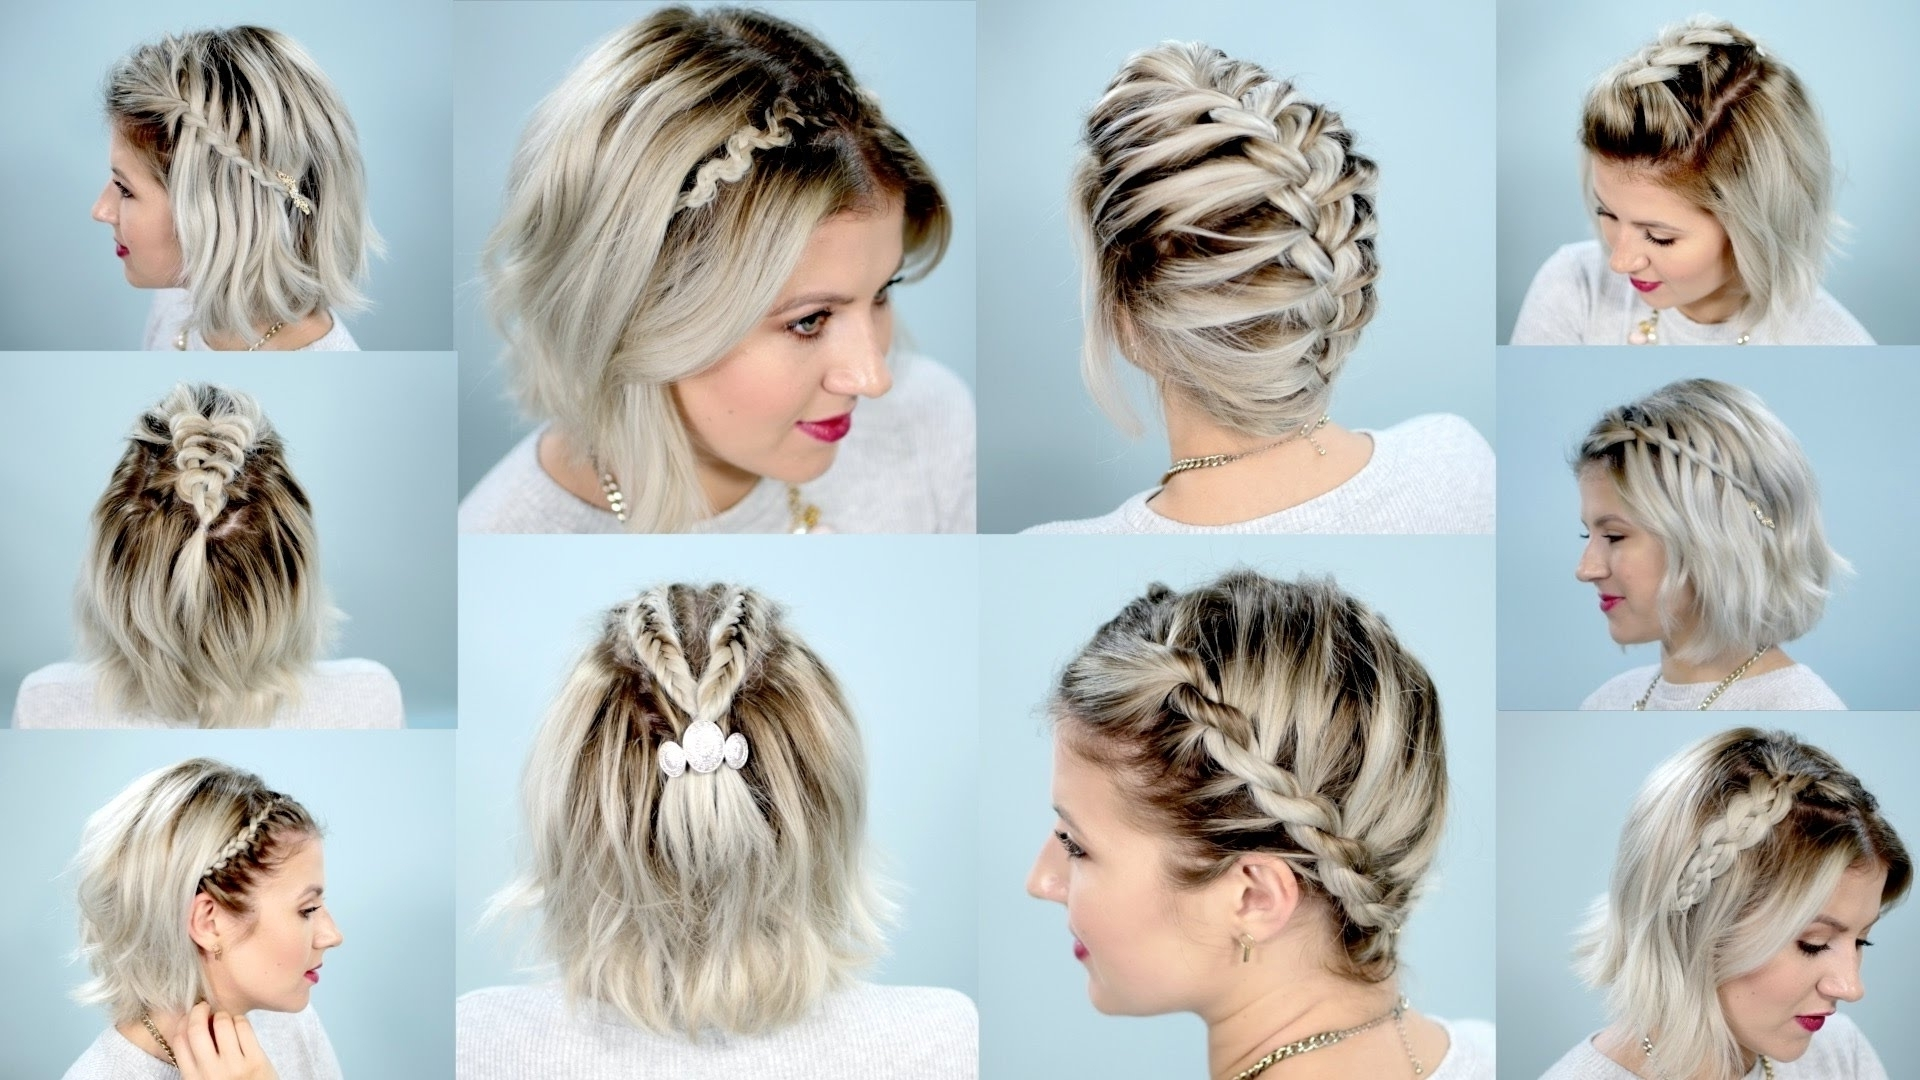 Top 10 Easy Braid Hairstyles For Short Hair With Current Braided Hairstyles For Short Hair (View 5 of 15)